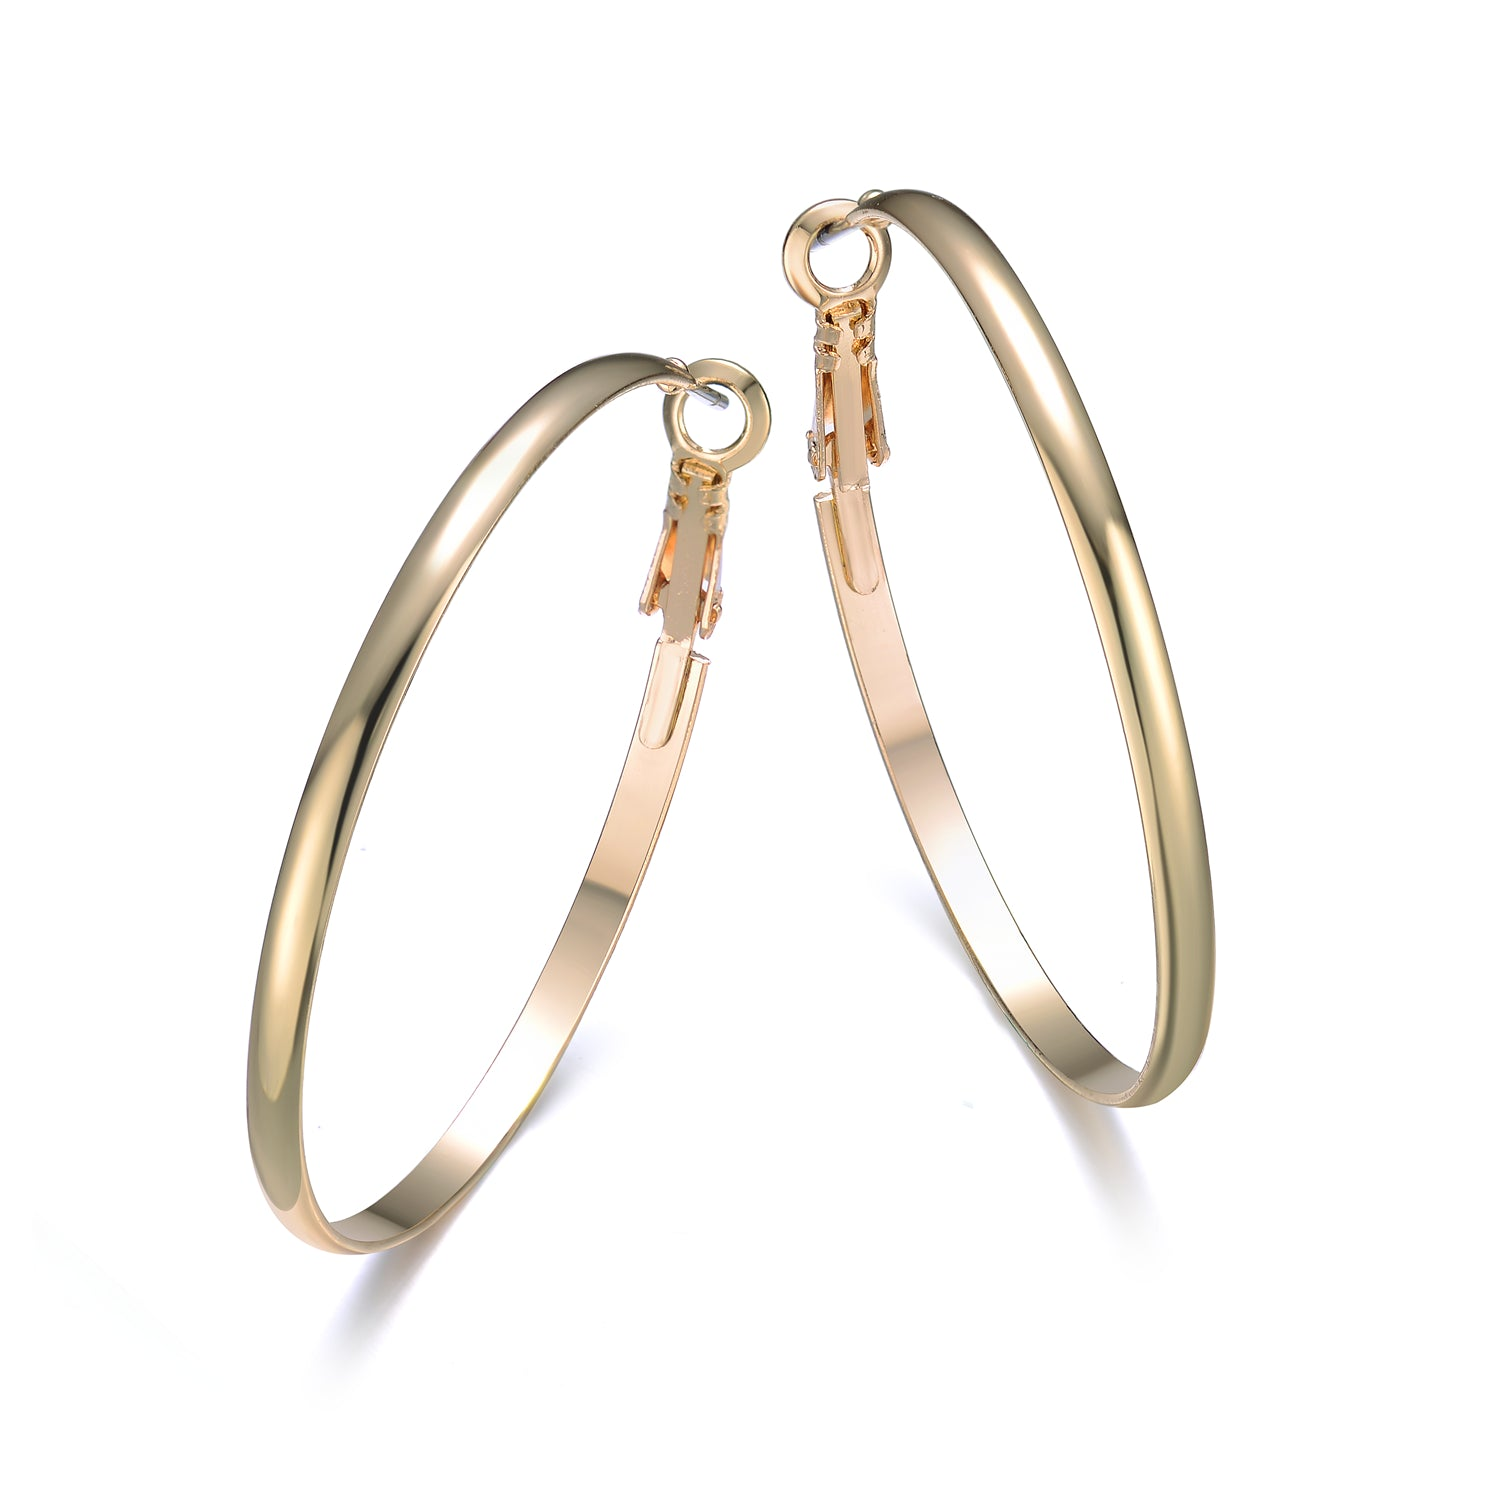 Hoop Earrings Gold 40mm By Jewels To Jet-Jewels to Jet-Magnetic Clasp Jewelry